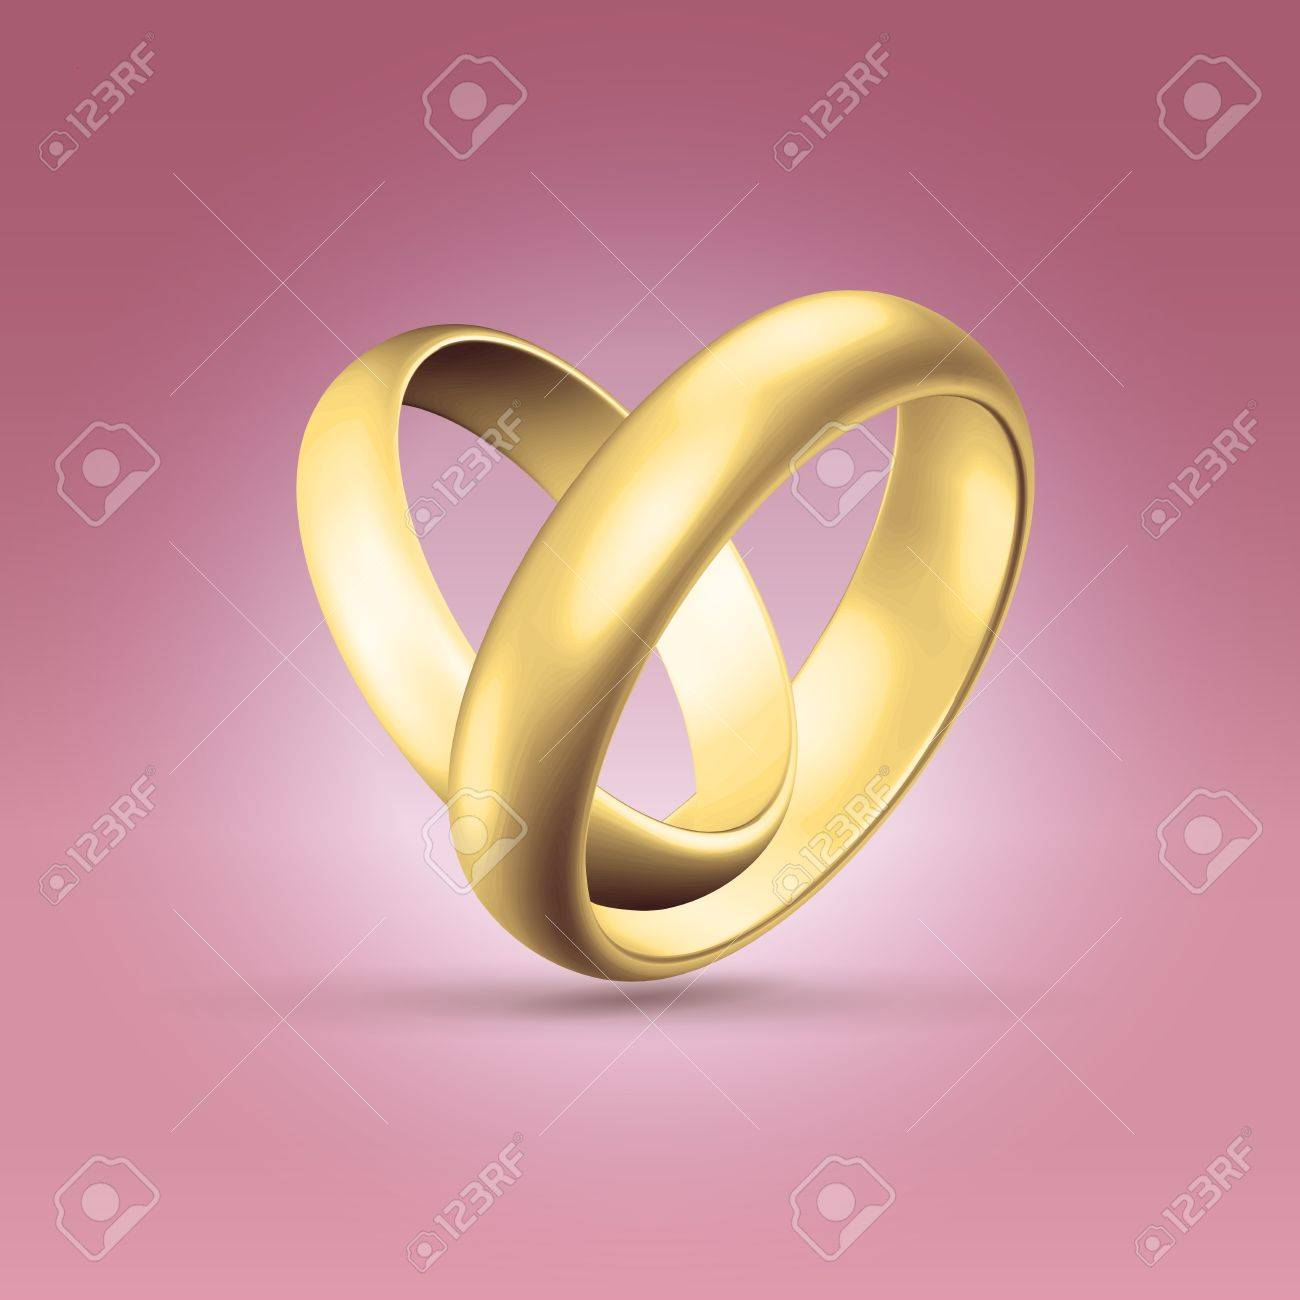 Golden Glossy Wedding Band Simple Curved Couple Of Rings Heart Stock Photo Picture And Royalty Free Image Image 20509956